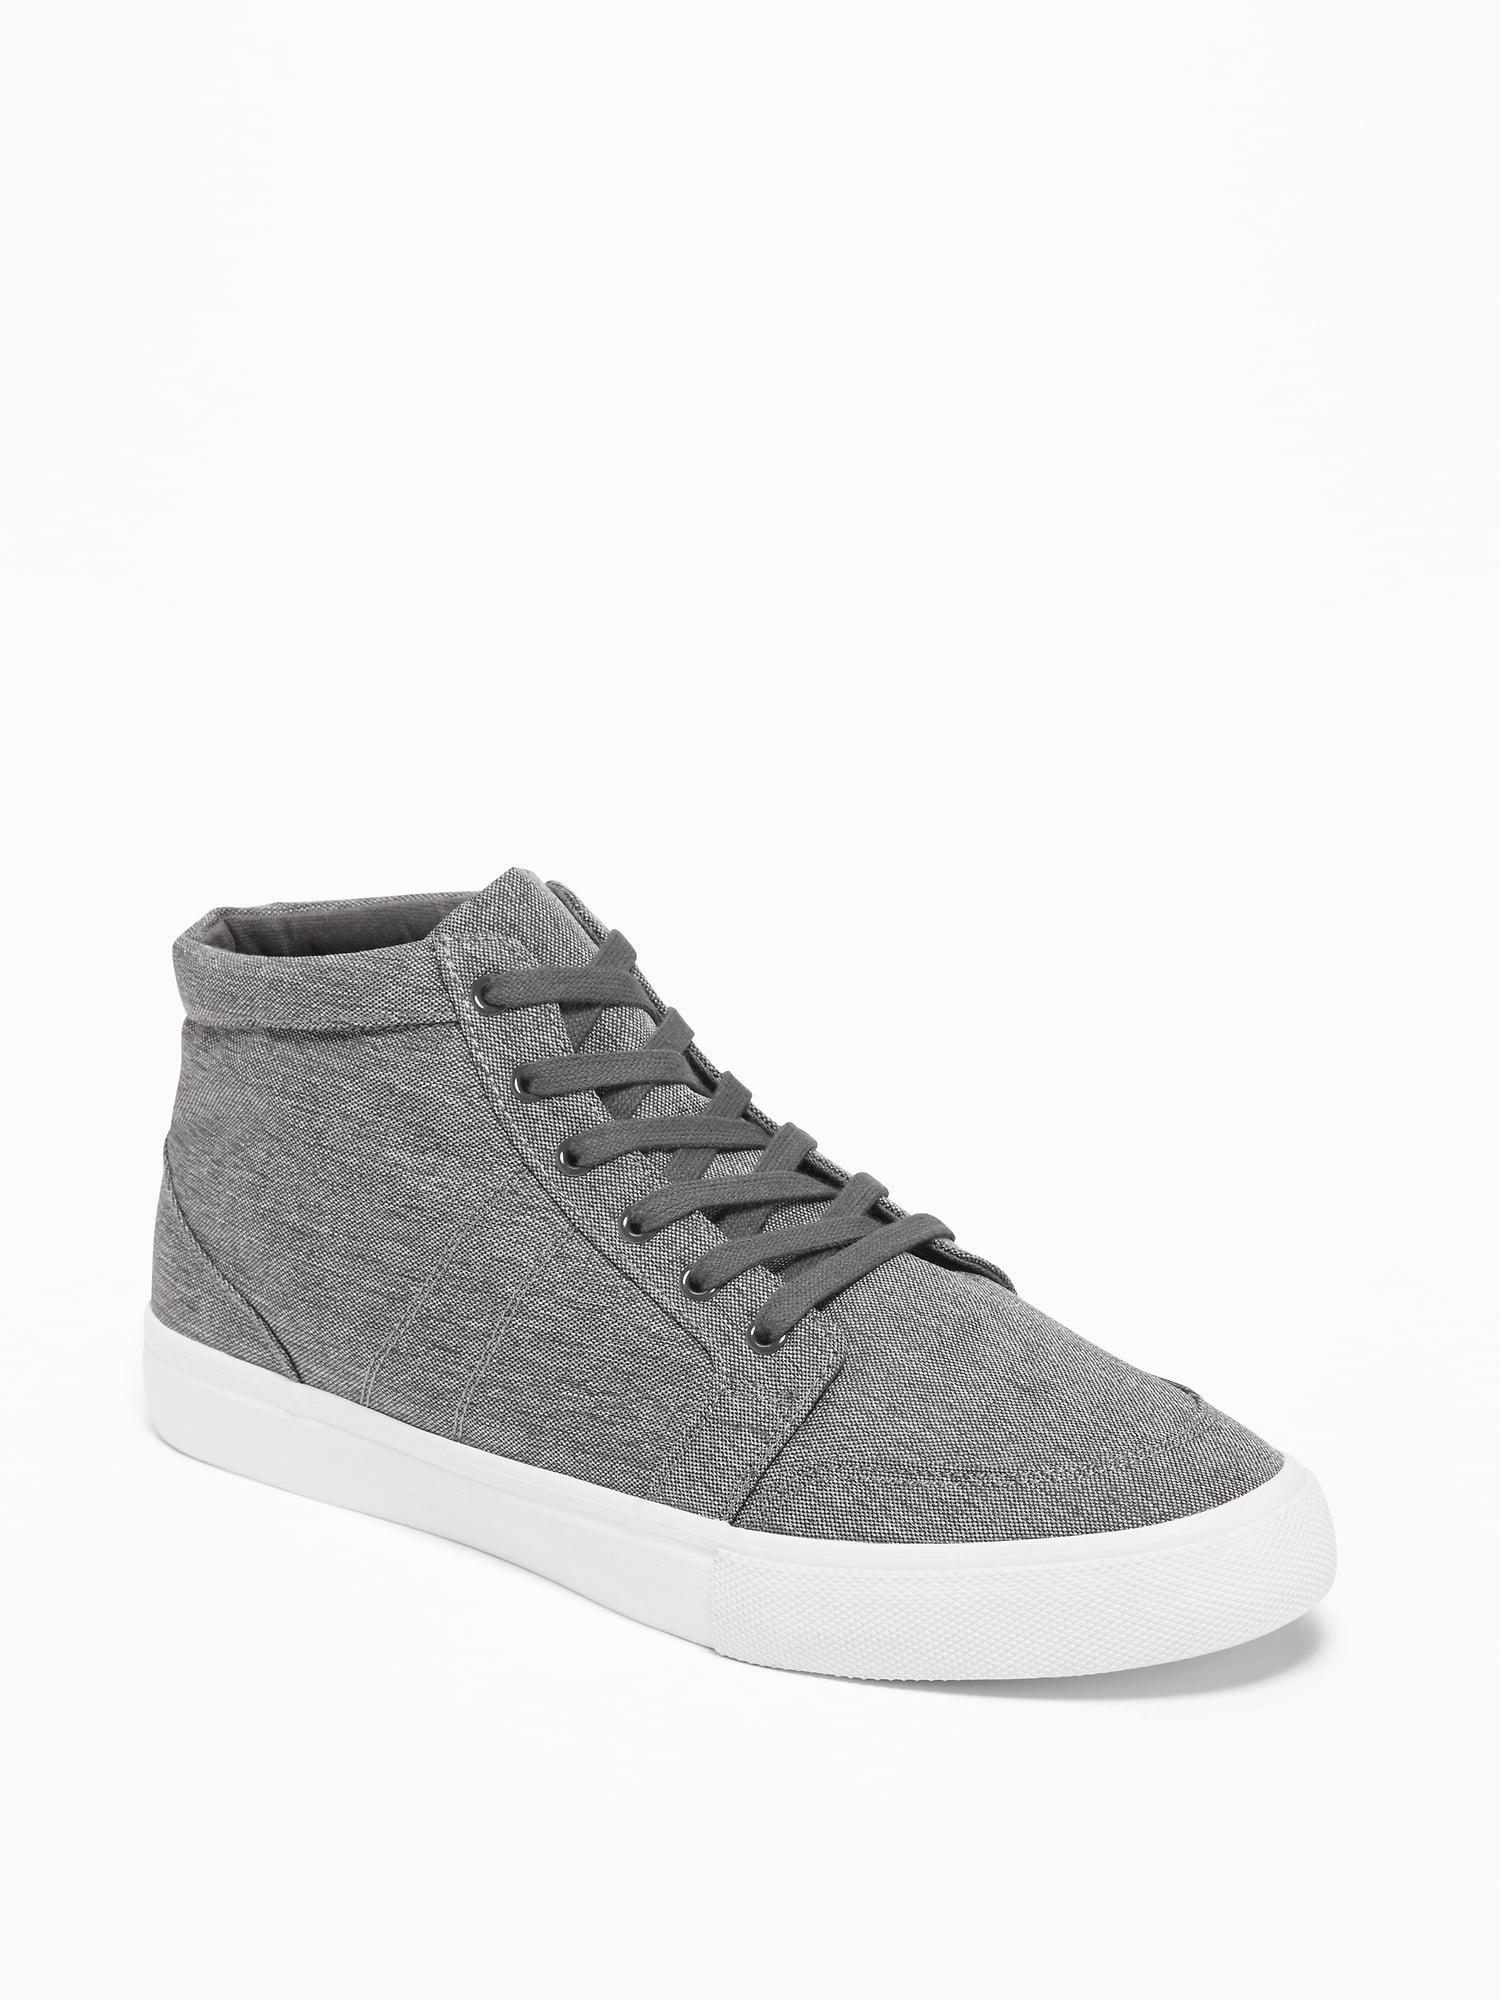 Old Navy Canvas Mid-top Sneakers in